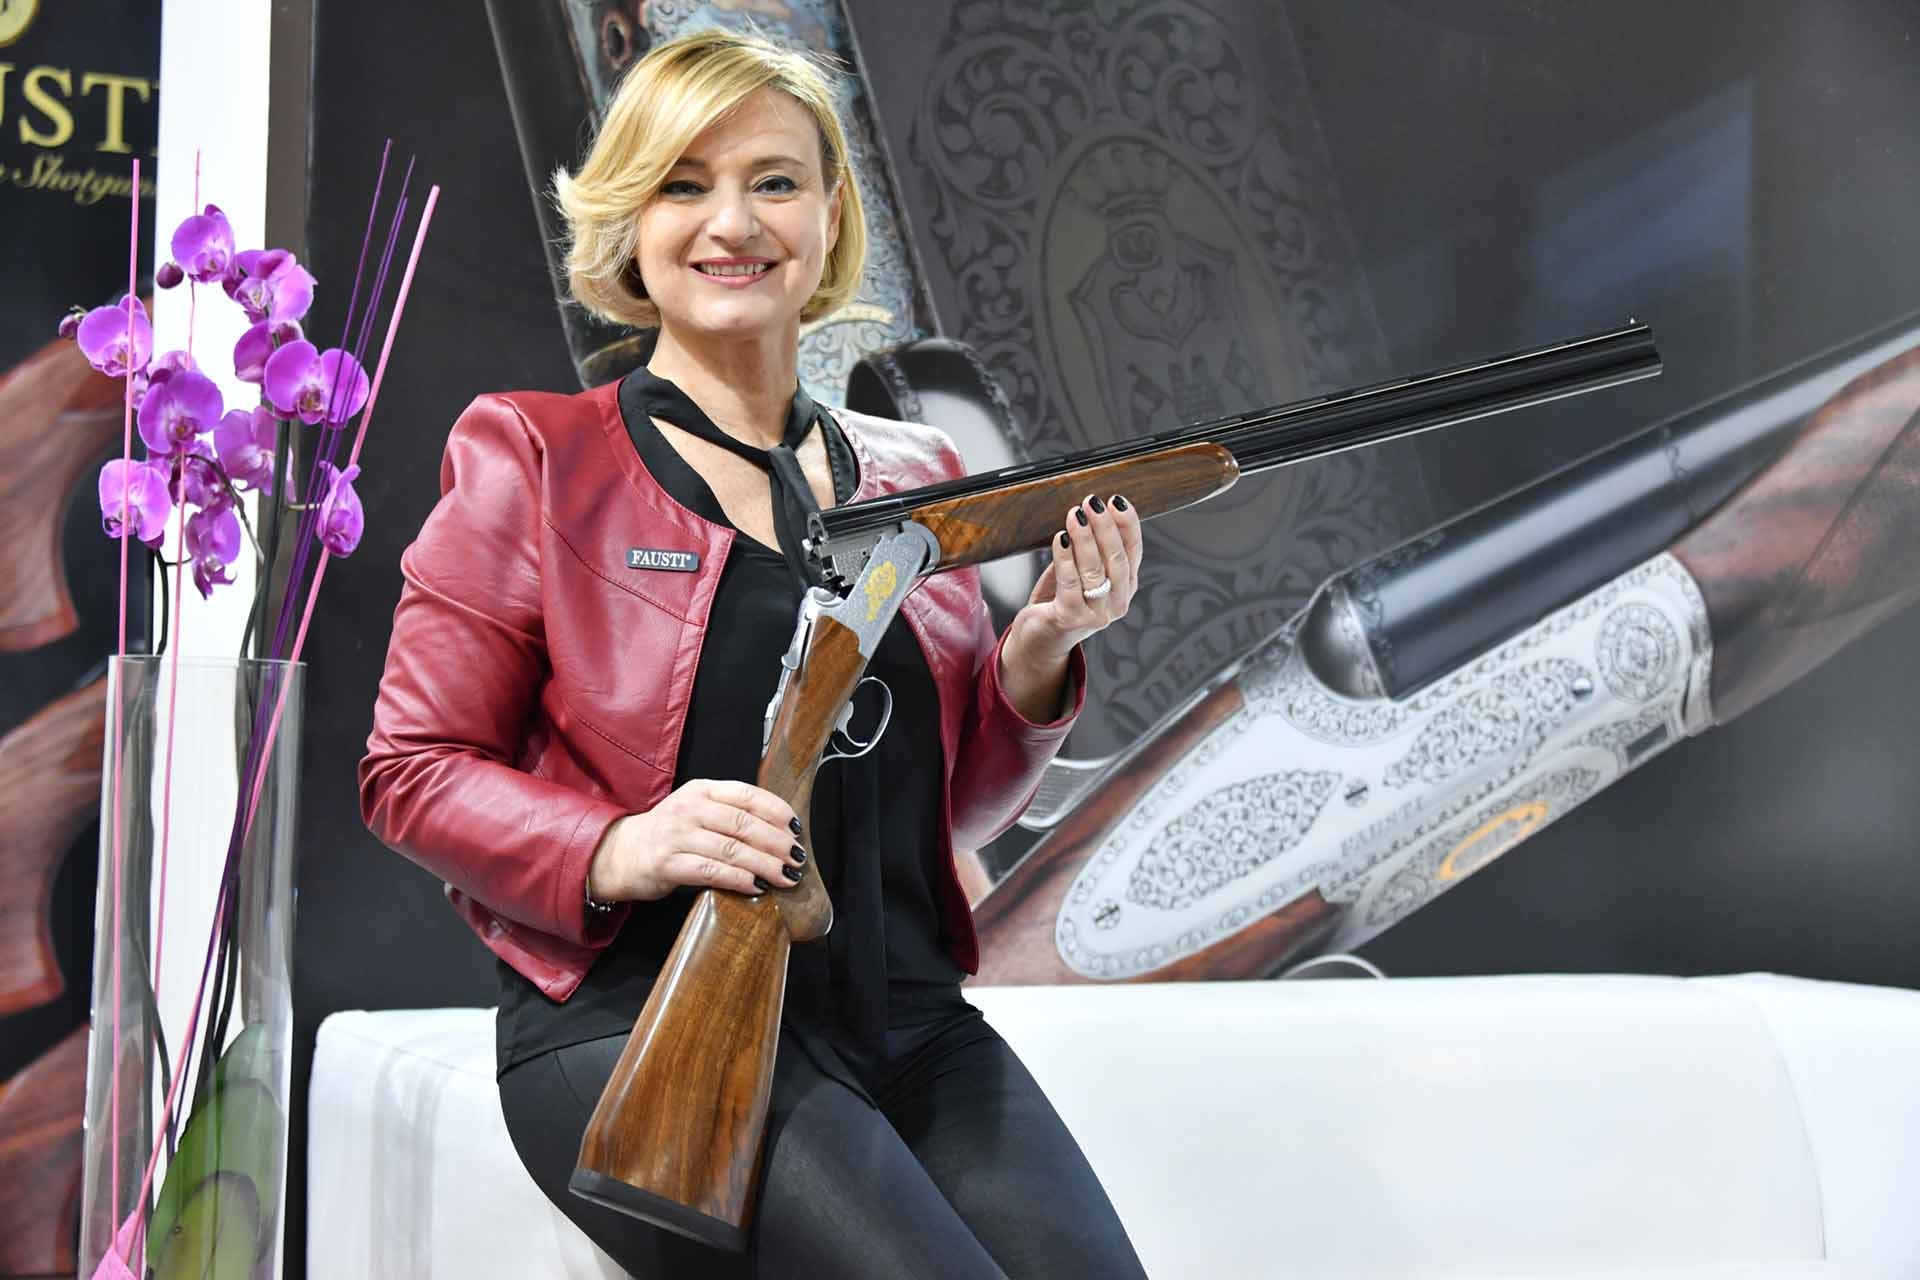 Giovanna Fausti with the new Fausti Aphrodite over under shotgun